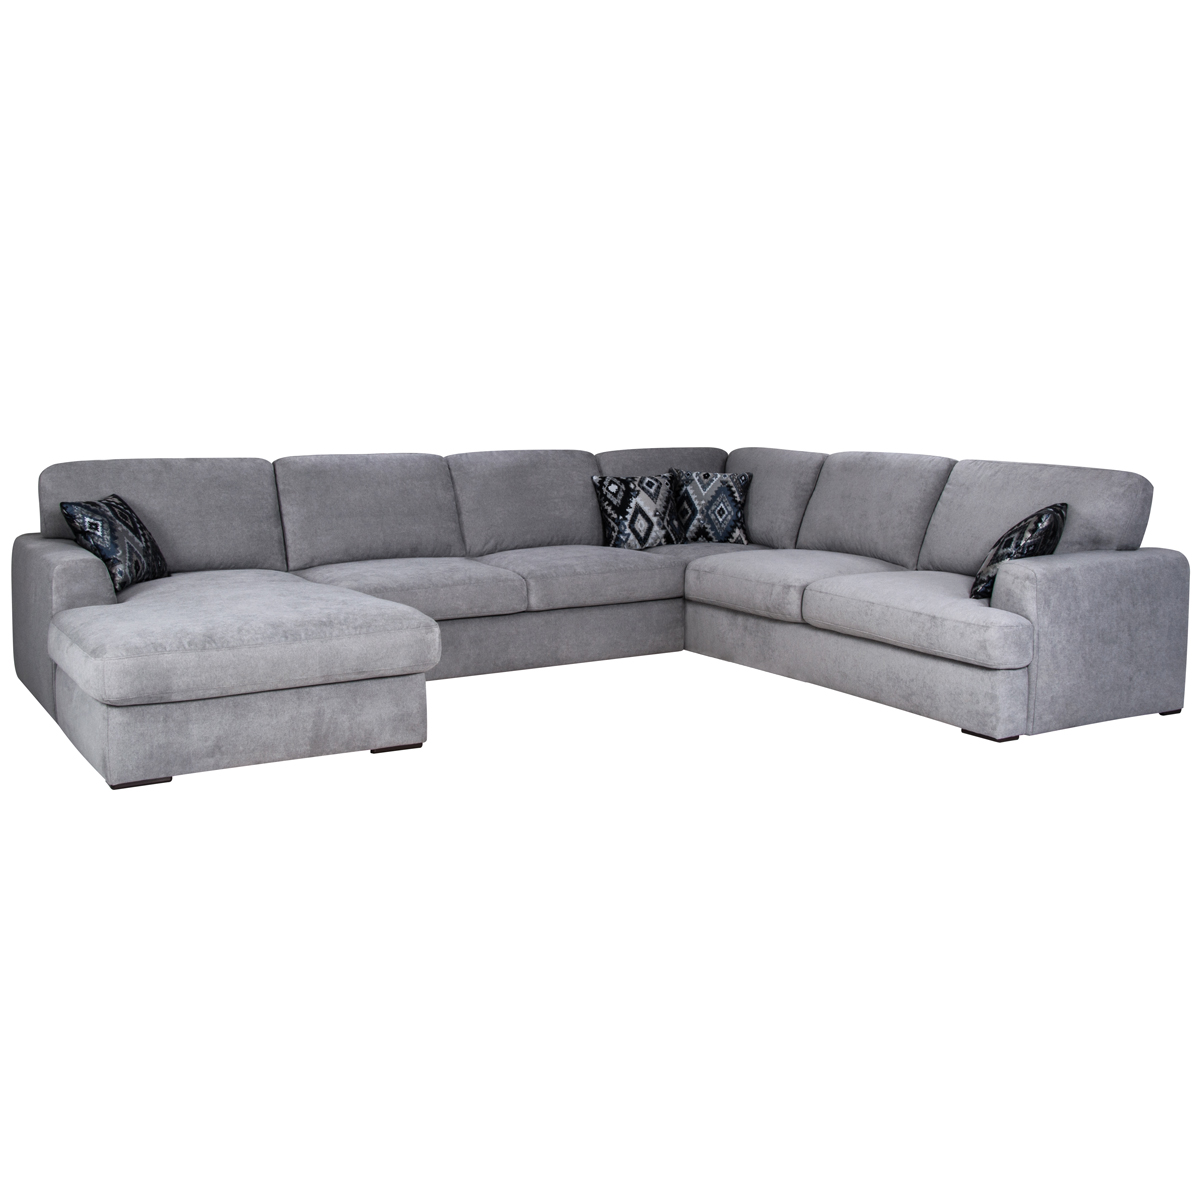 wohnlandschaft magadan grau 362x250 polstersofa sofa mit bettfunktion ebay. Black Bedroom Furniture Sets. Home Design Ideas